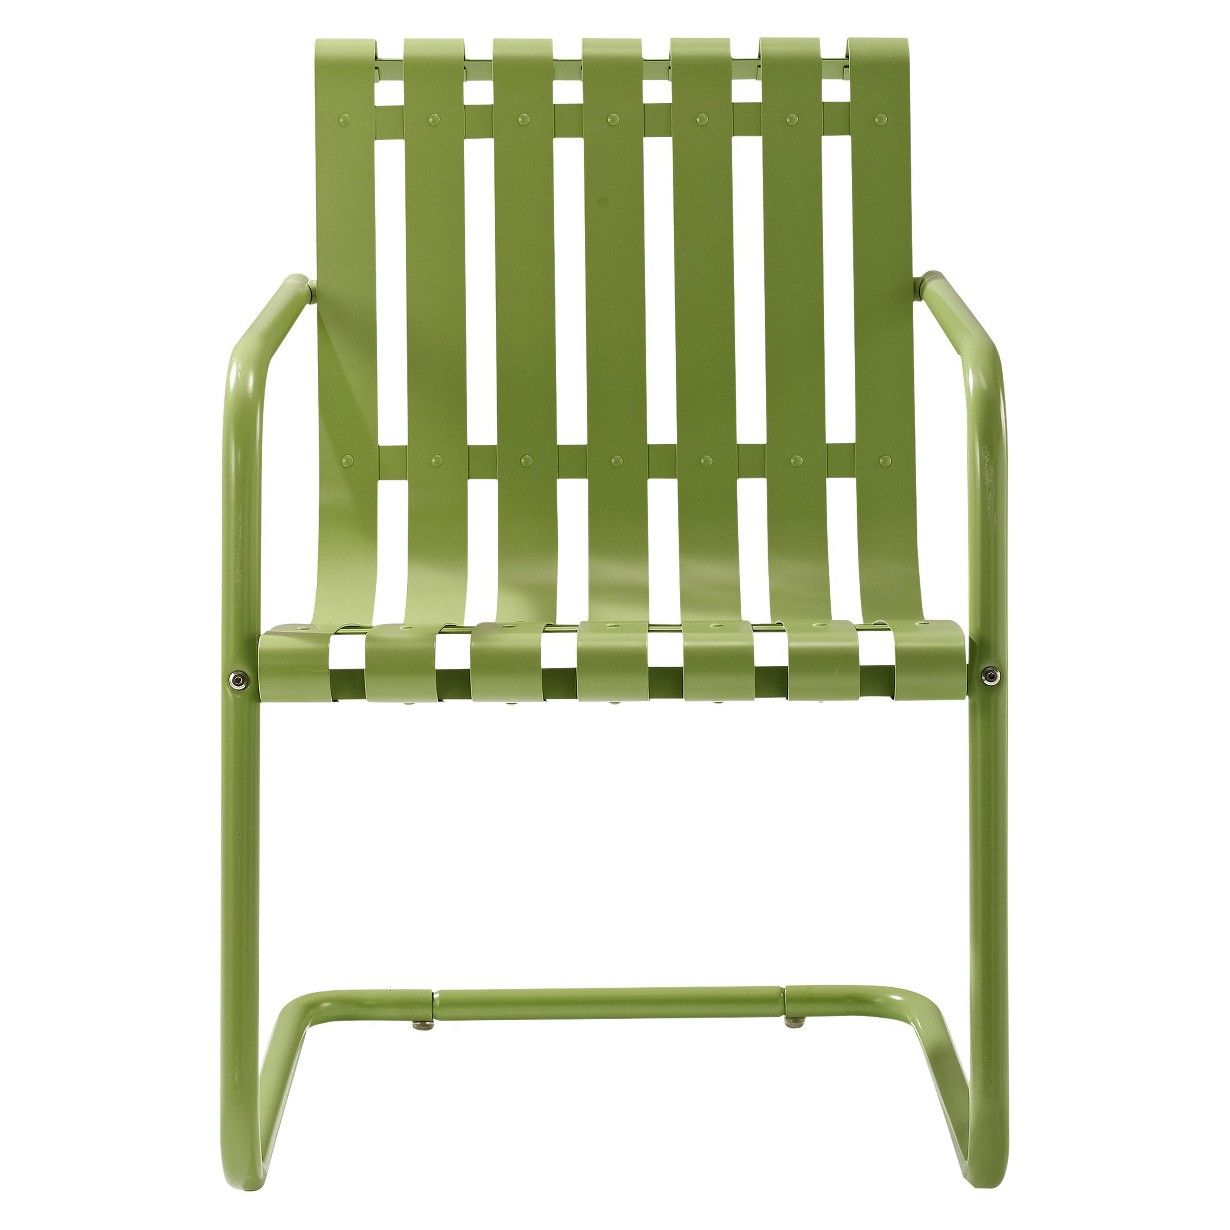 Gracie Metal Retro Patio Spring Chair Target Lounge Chair Outdoor Patio Chairs On Sale Contemporary Outdoor Lounge Chairs